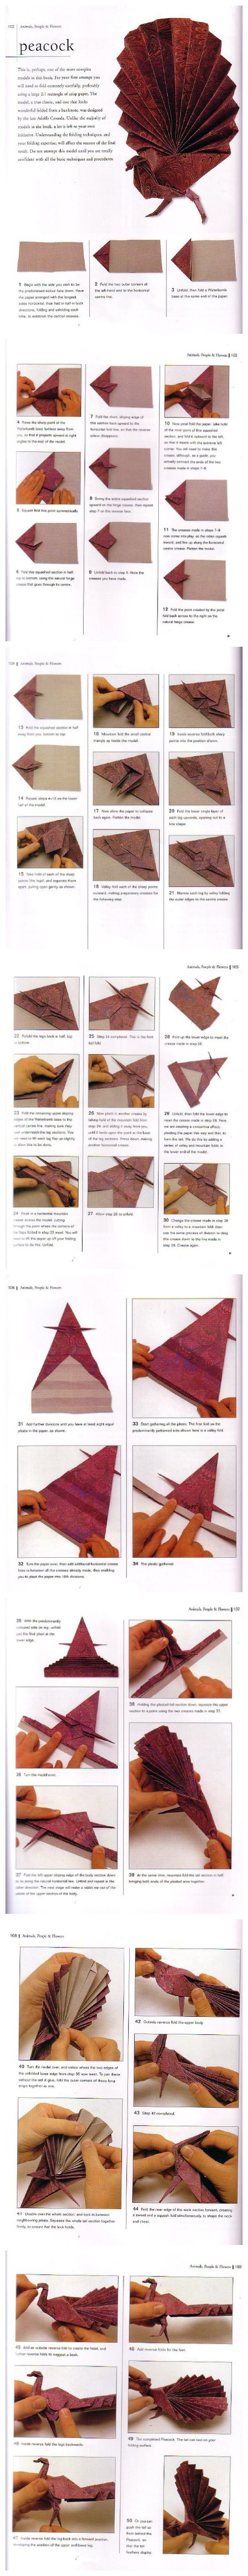 Peaco Projects To Try Pinterest Origami Koi Diagram